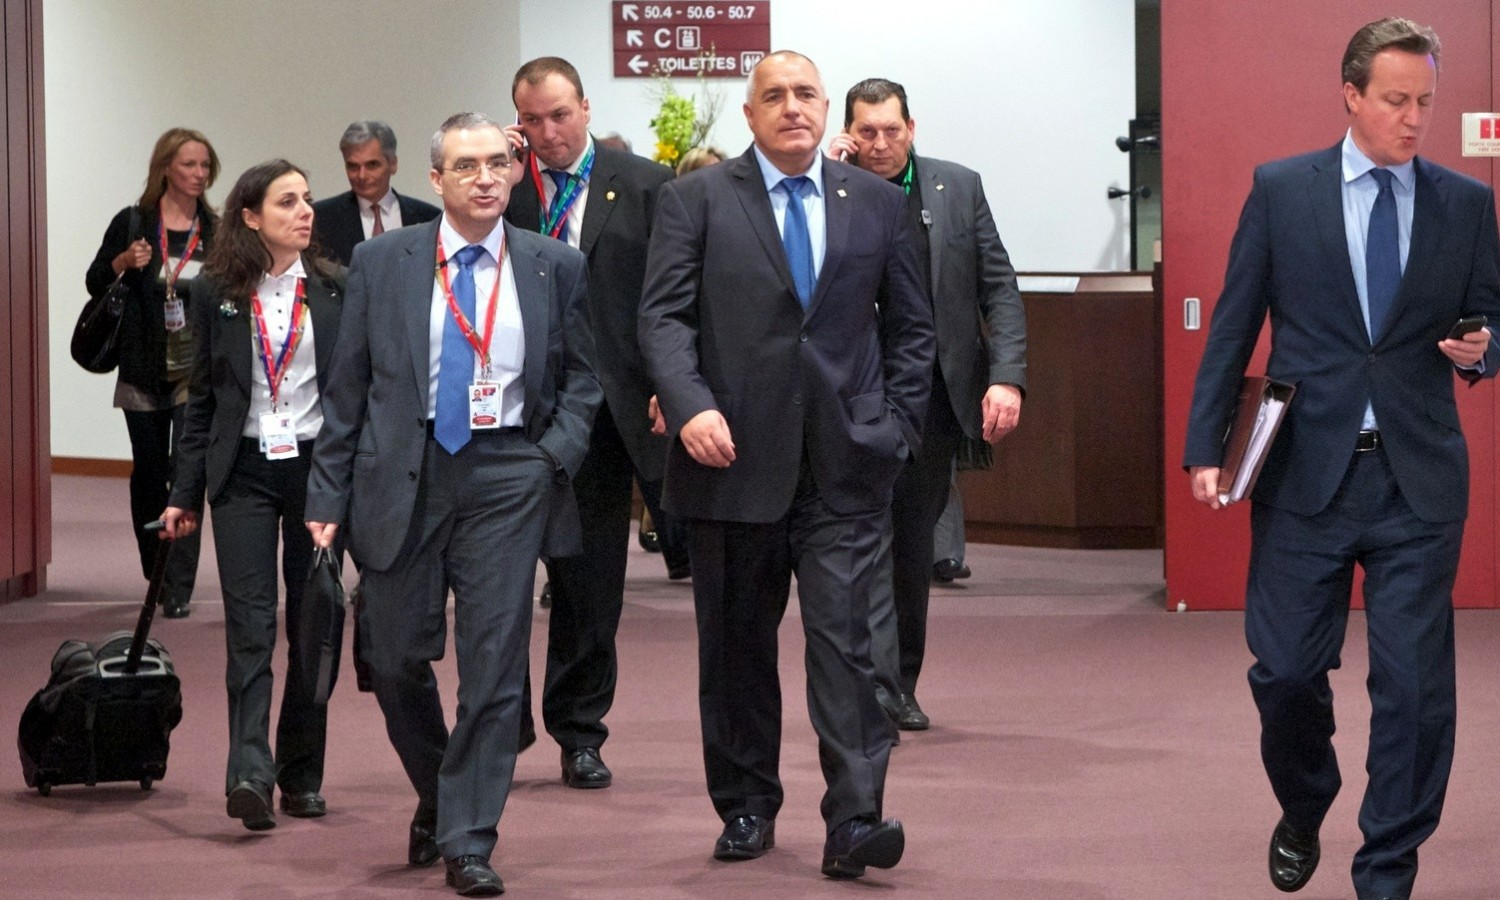 Boyko Borissov entering European Council in Brussels on March 18, 2016 / tvnewsroom.consilium.europa.eu